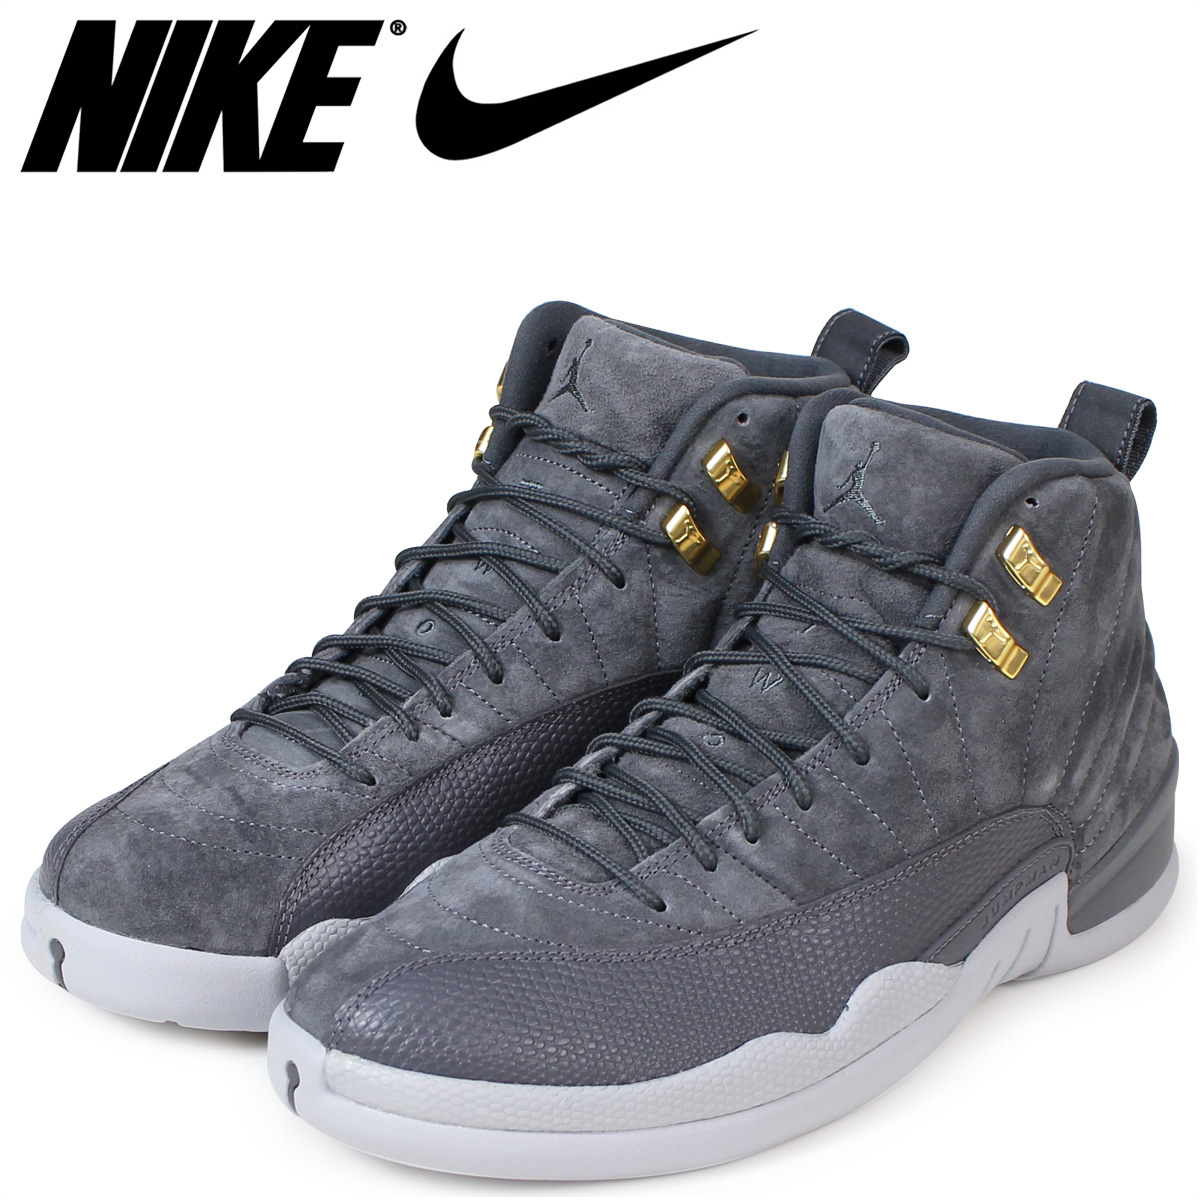 312ed6e35080 Buy 2 OFF ANY nike air jordan 12s CASE AND GET 70% OFF!